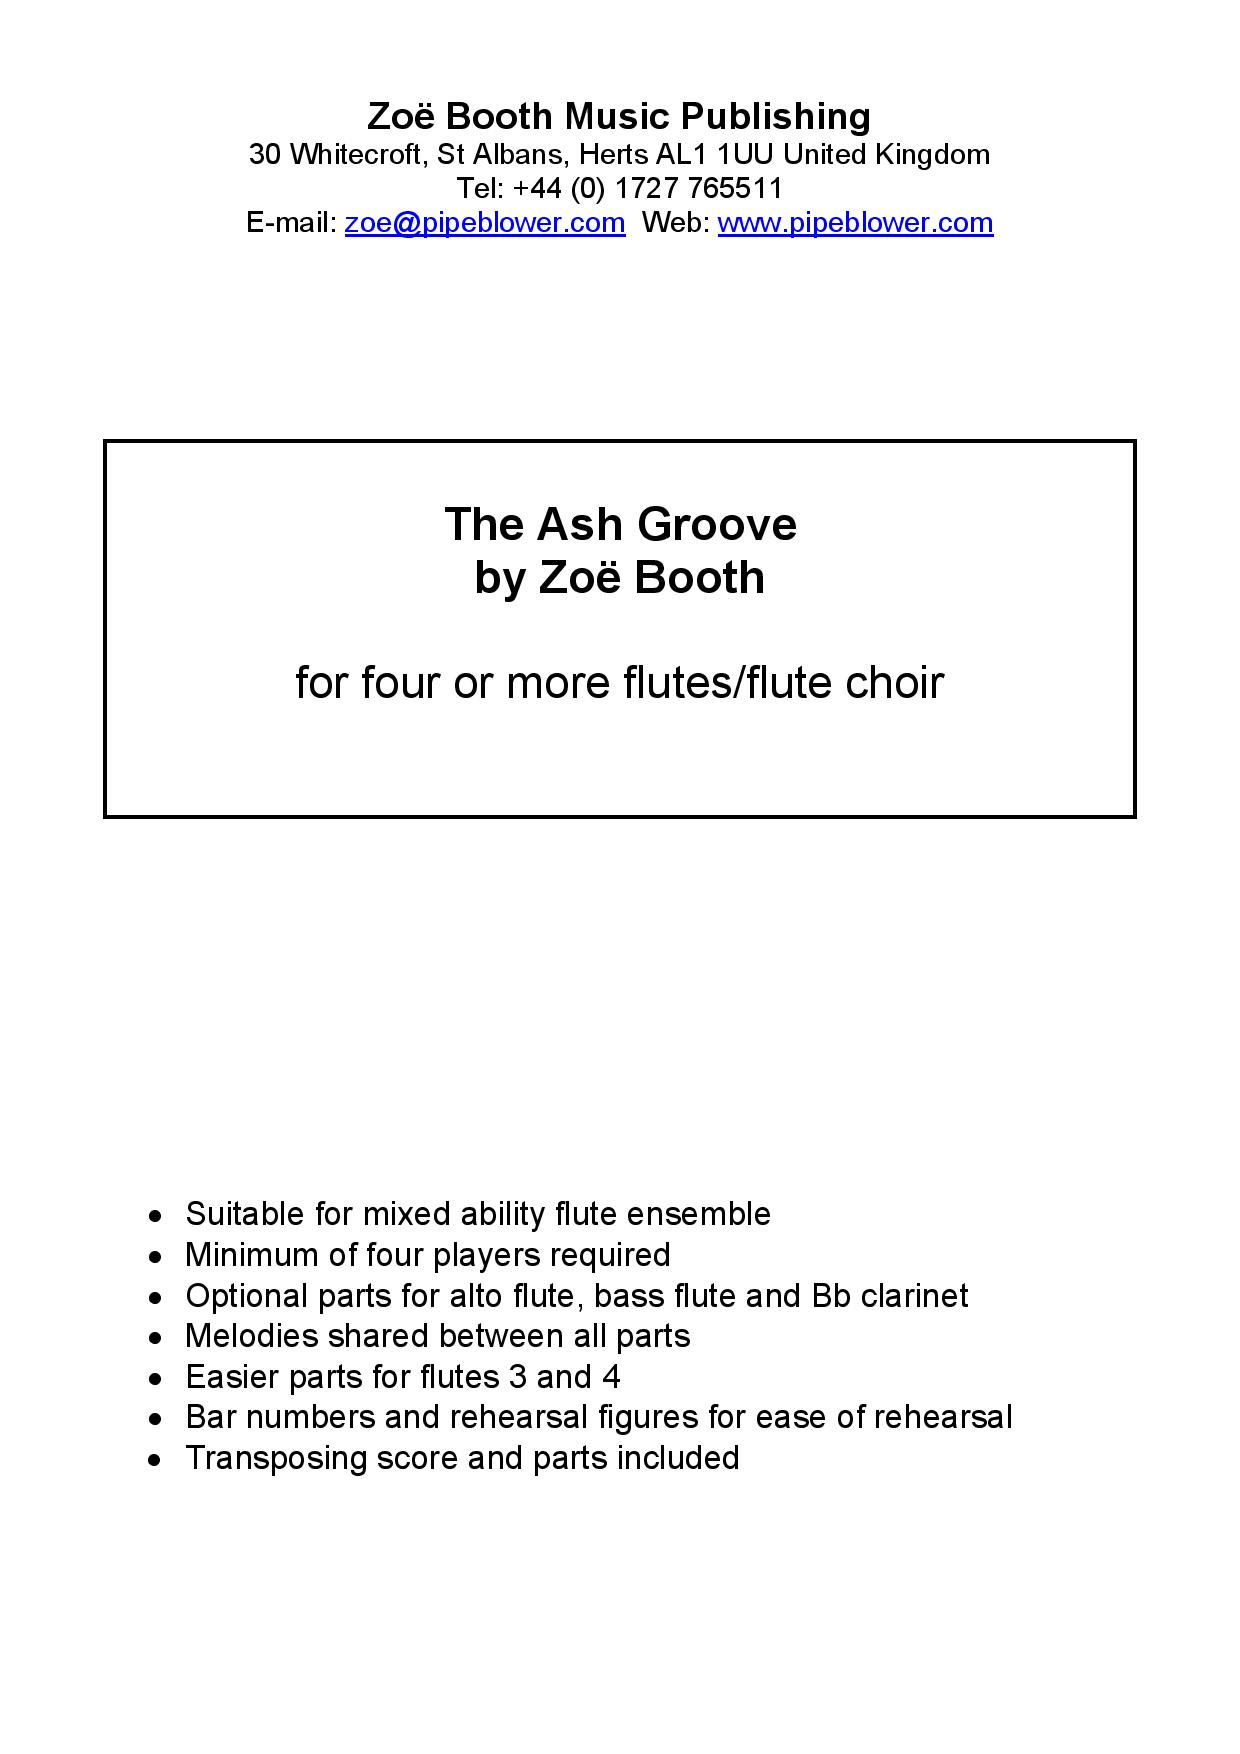 The Ash Groove  by Zoë Booth for four or more flutes/flute choir